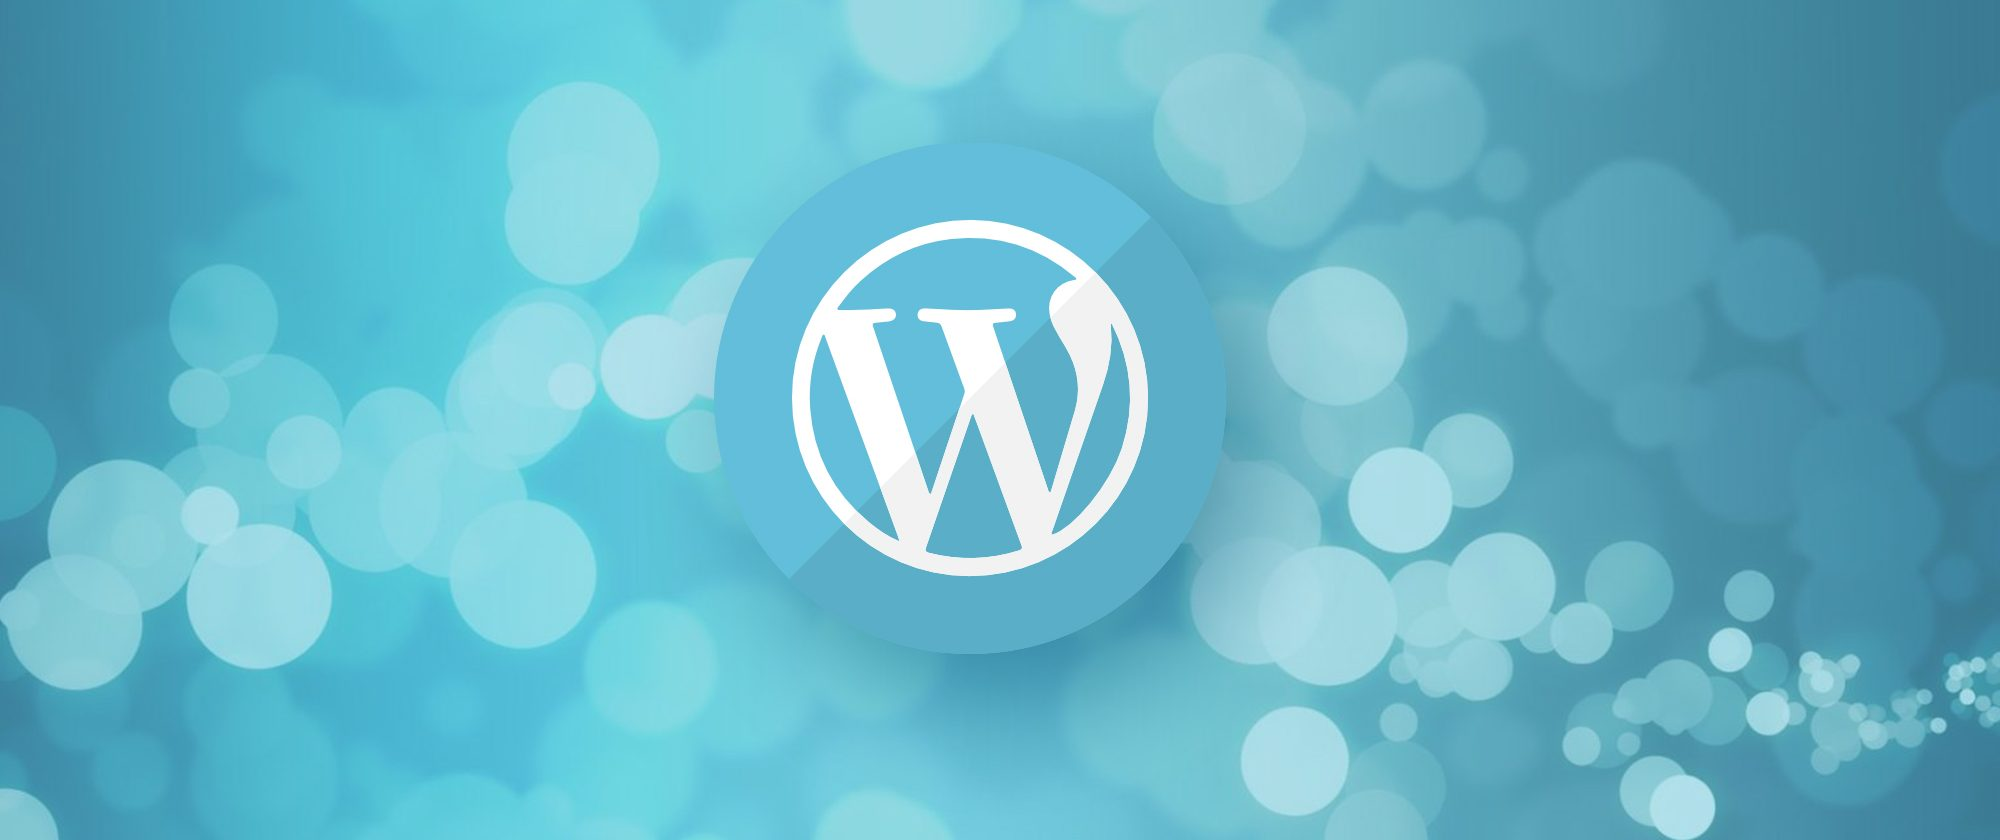 learn wordpress free!